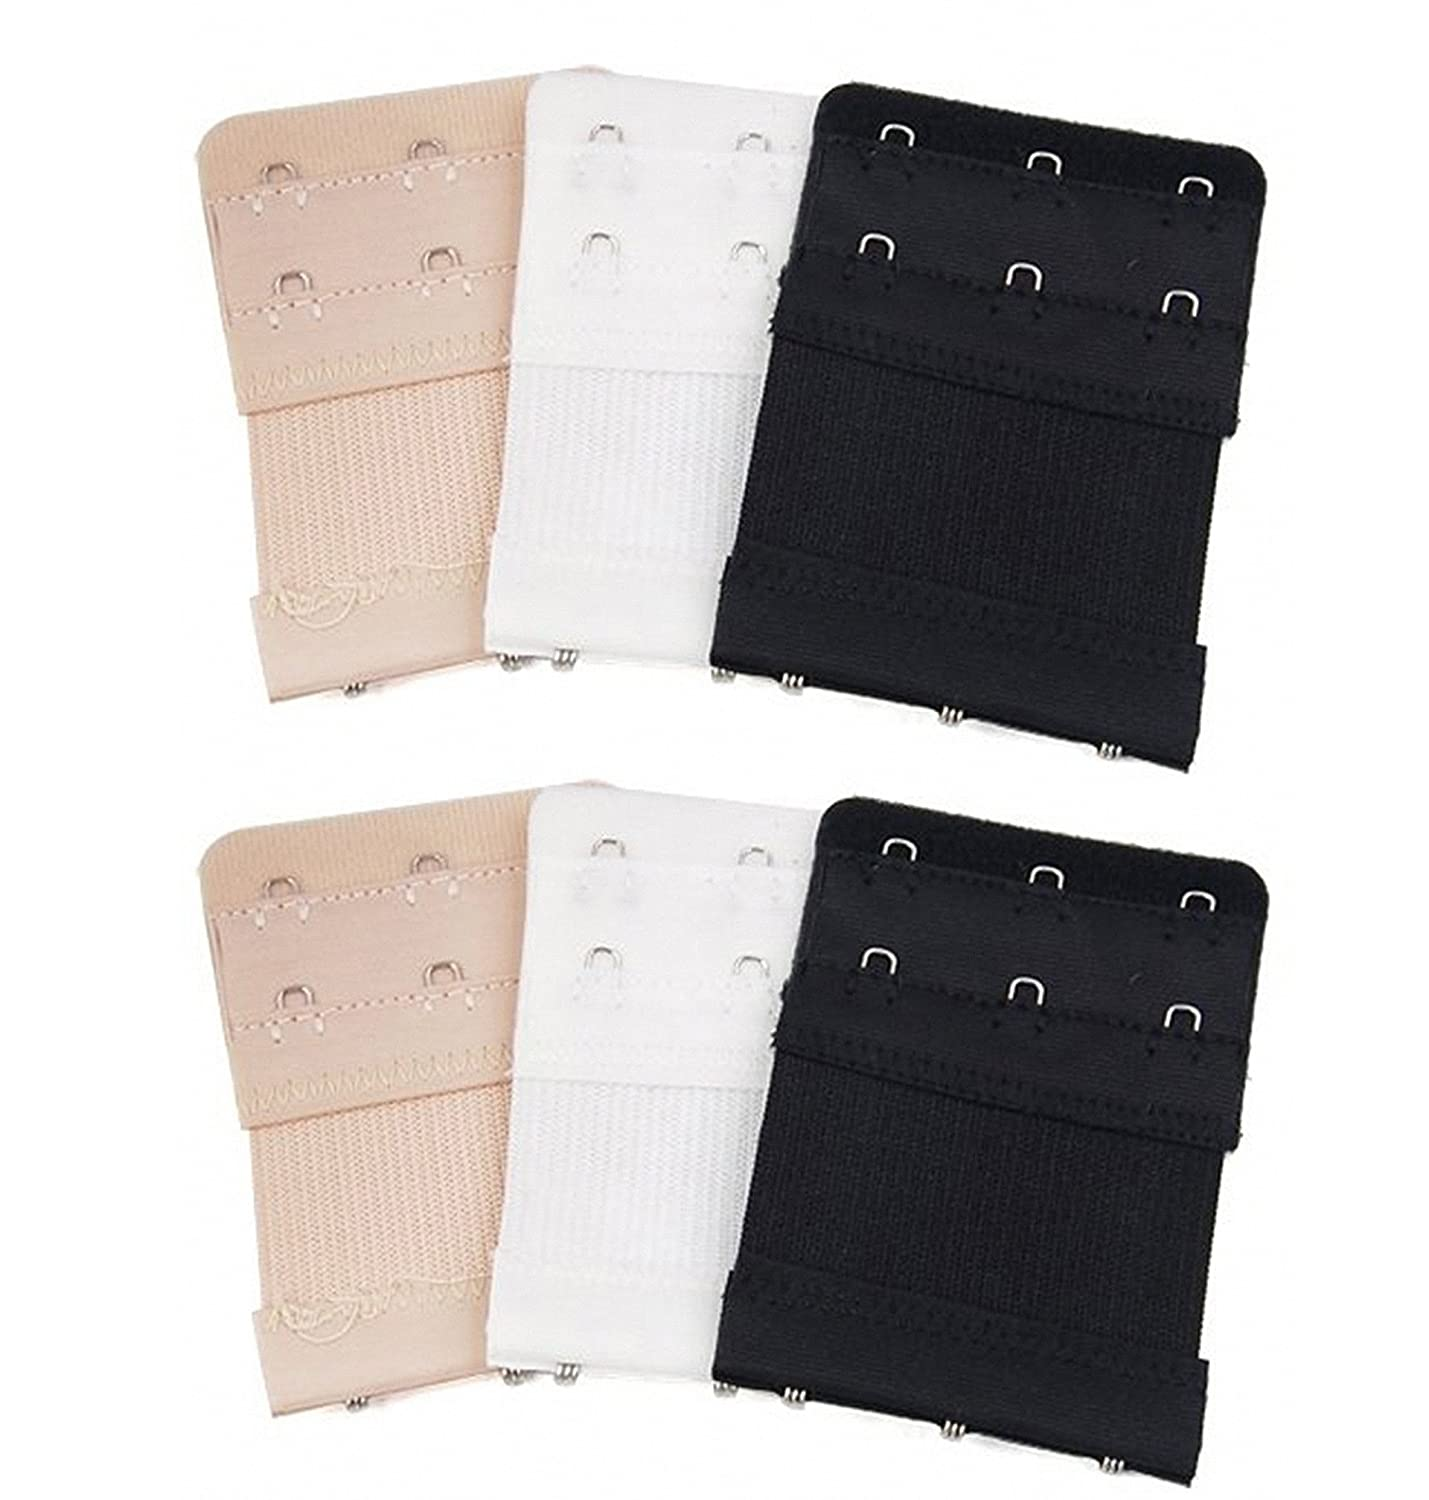 6pcs Women Ladies Soft Comfortable Back Bra 2 Hooks / 3 Hooks / 4 Hooks Band Extension Strap Extender, White / Black / Khaki